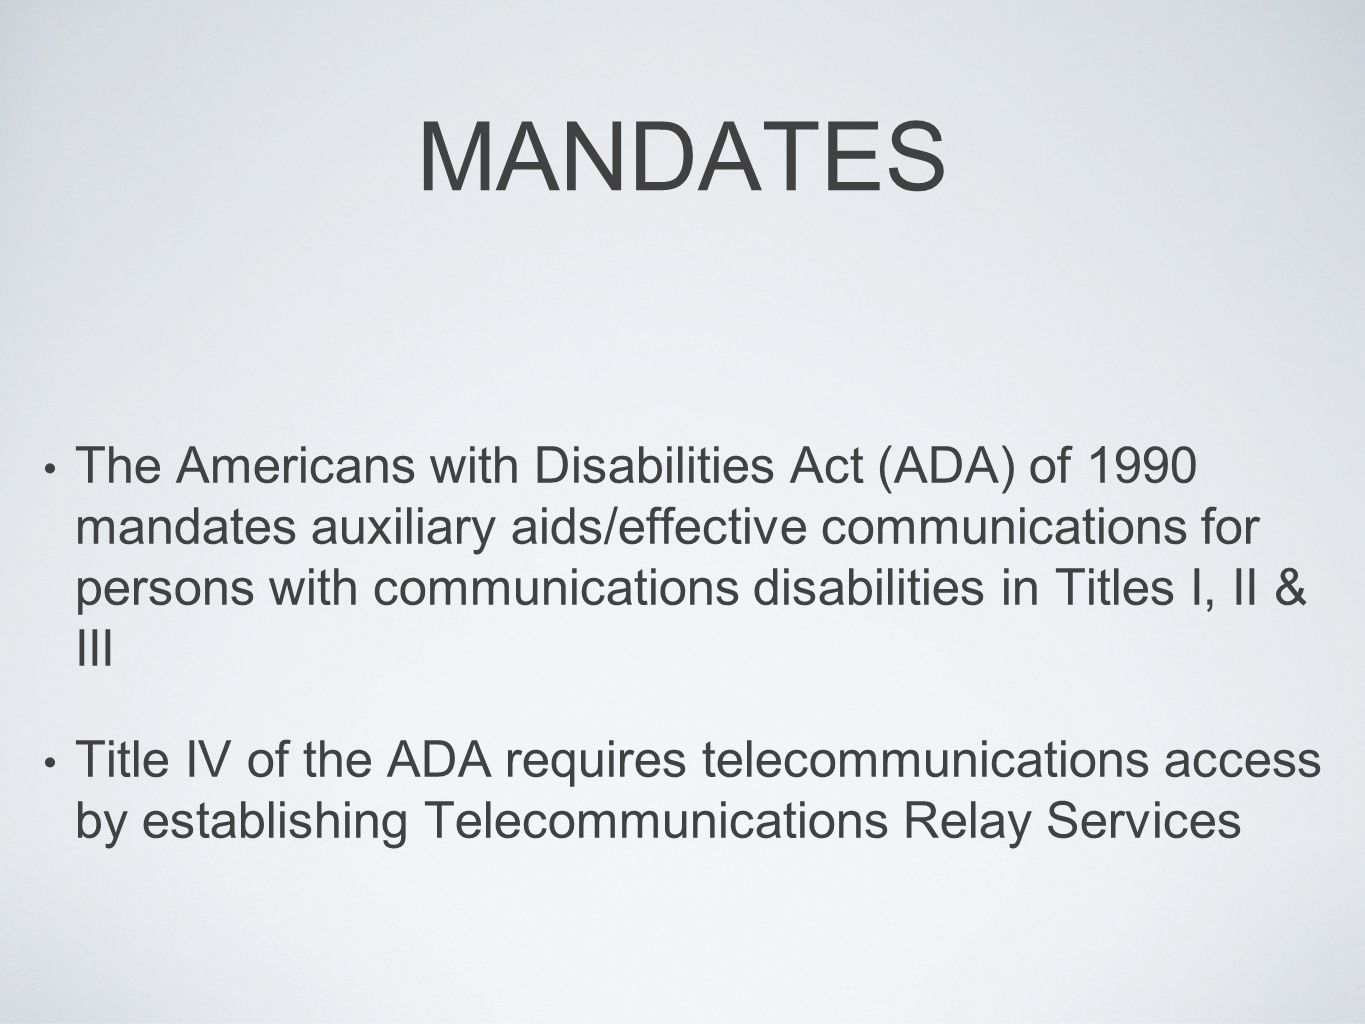 MANDATES The FCC regulates TRS and VRS as well as STS, IP Relay, Spanish TRS/STS and CapTel VRI is not regulated by any Federal or state agency, but meets the fundamental rights ensured by ADA through provision of qualified sign language interpreters for persons who are deaf, deaf-blind, or hard of hearing